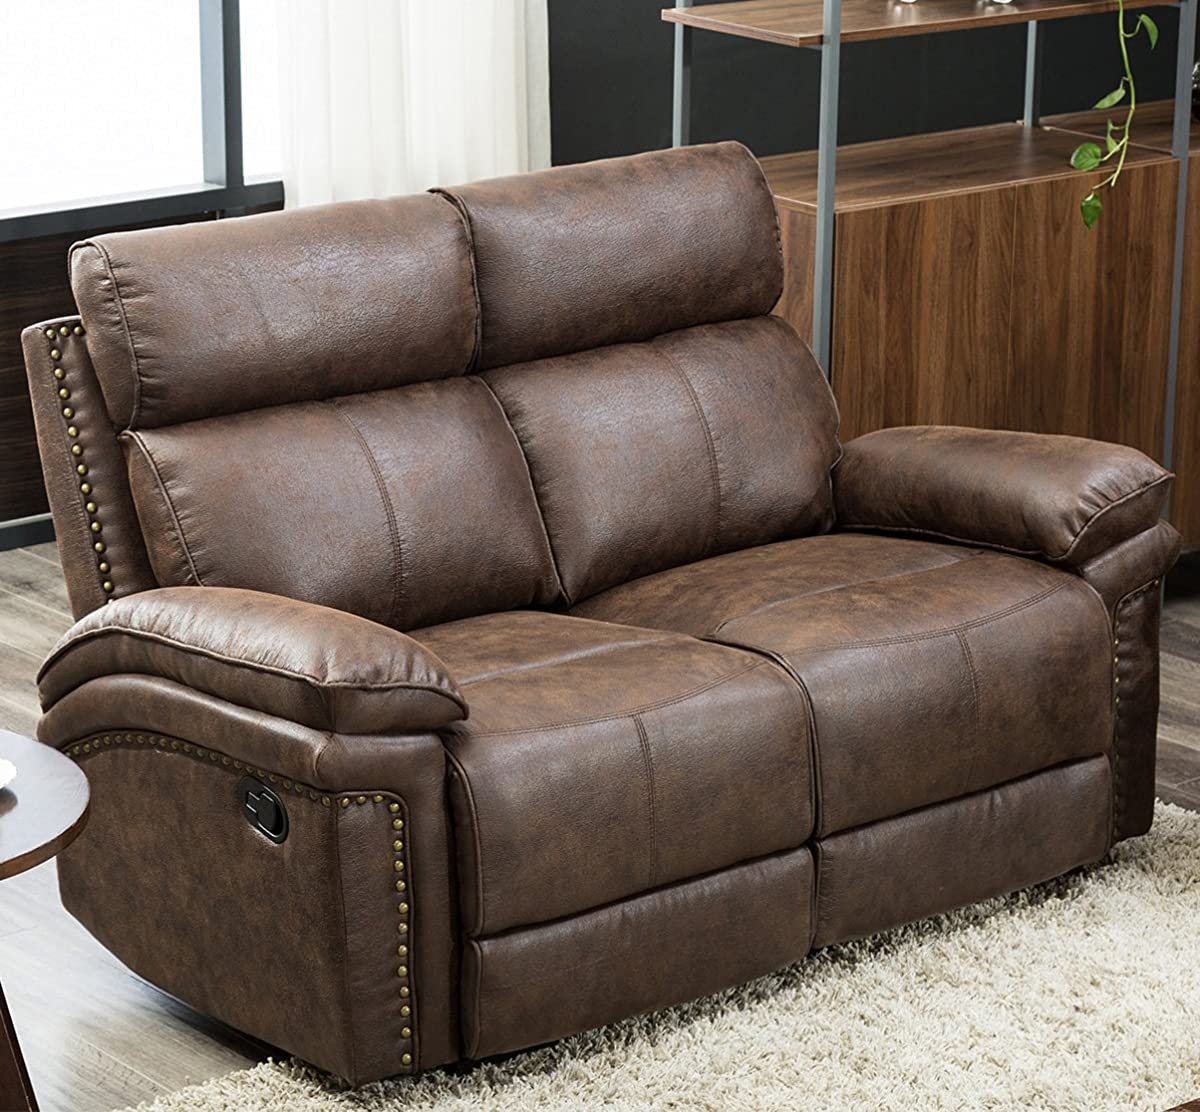 Modern Living Room Recliners Harper Bright Designs Living Room Sectional Recliner Sofa Set